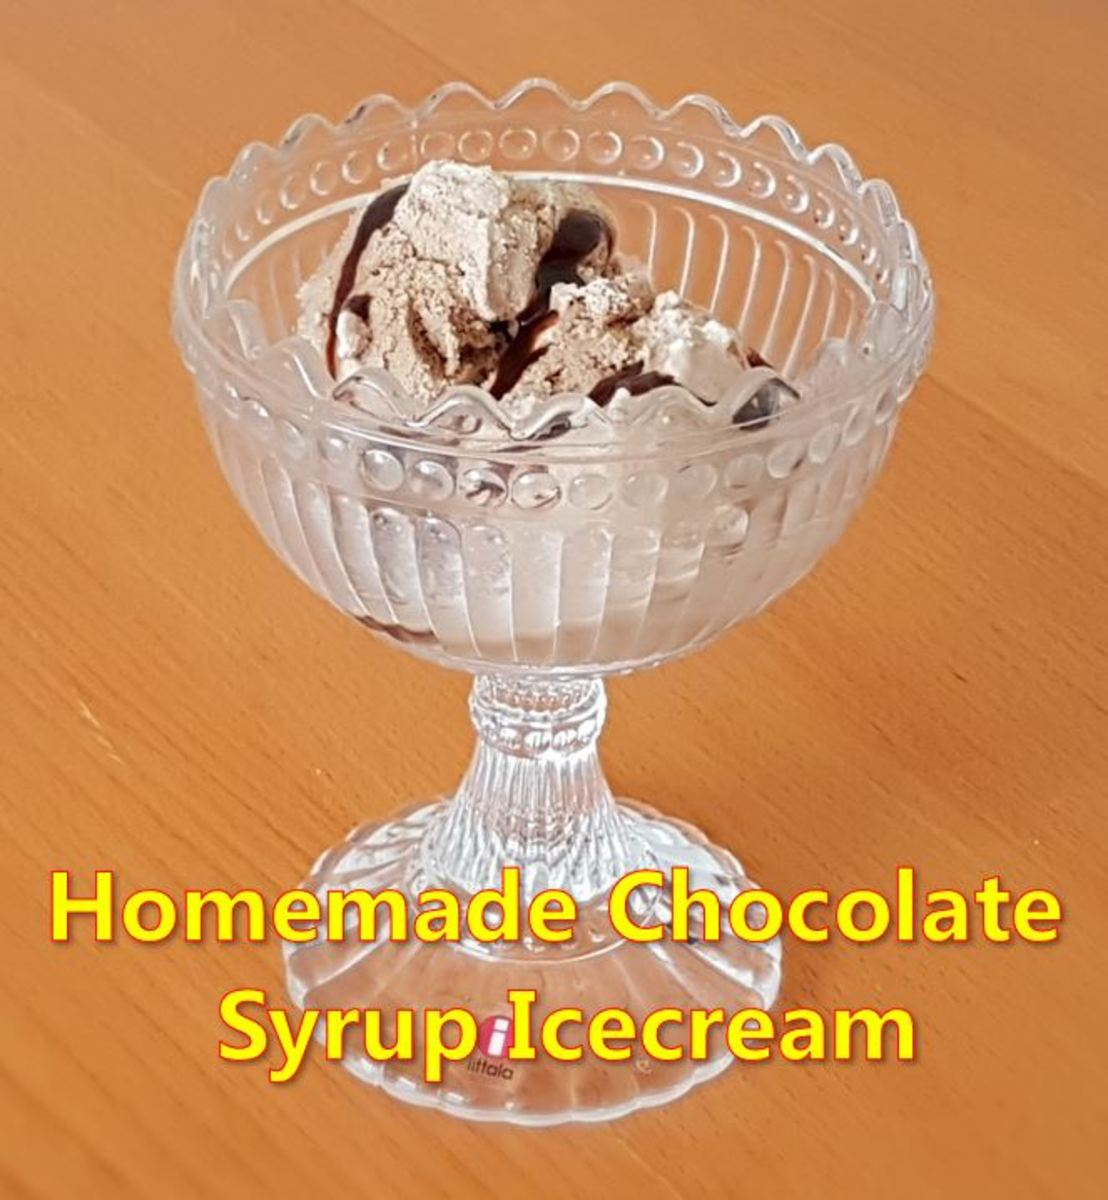 Homemade Ice Cream Using Hershey's Chocolate Syrup